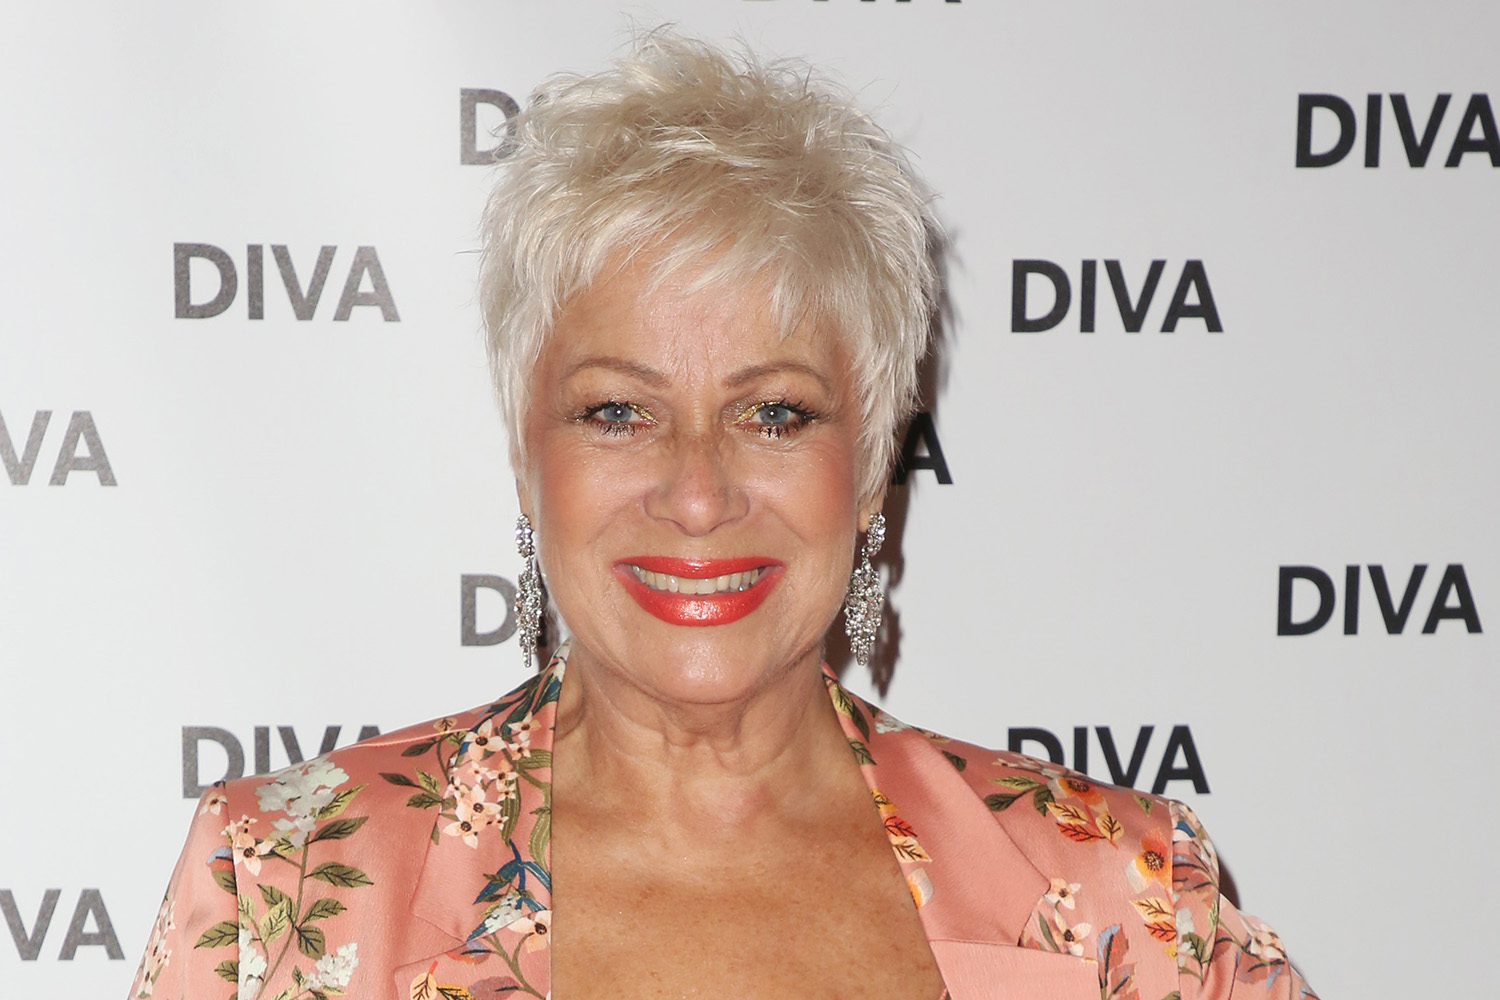 Denise Welch lashes out at Piers Morgan for sparking 'anxiety' with coronavirus comments